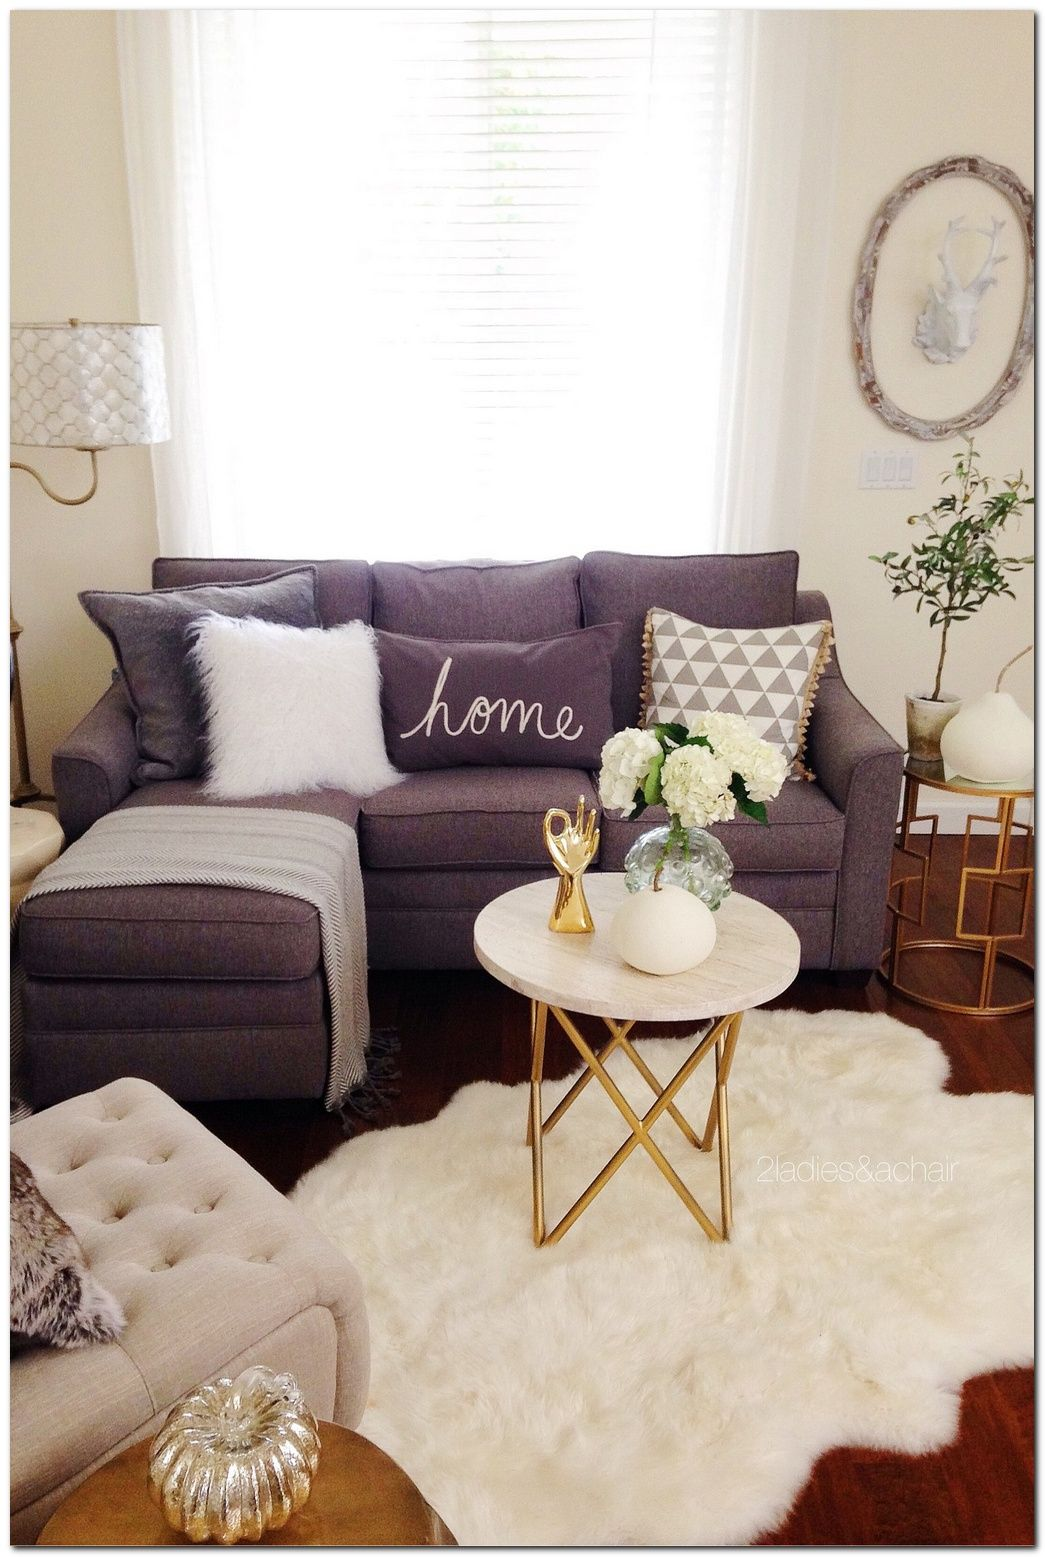 redecorating bedroom%0A     Ideas to Decorate Small Apartment on a Budget